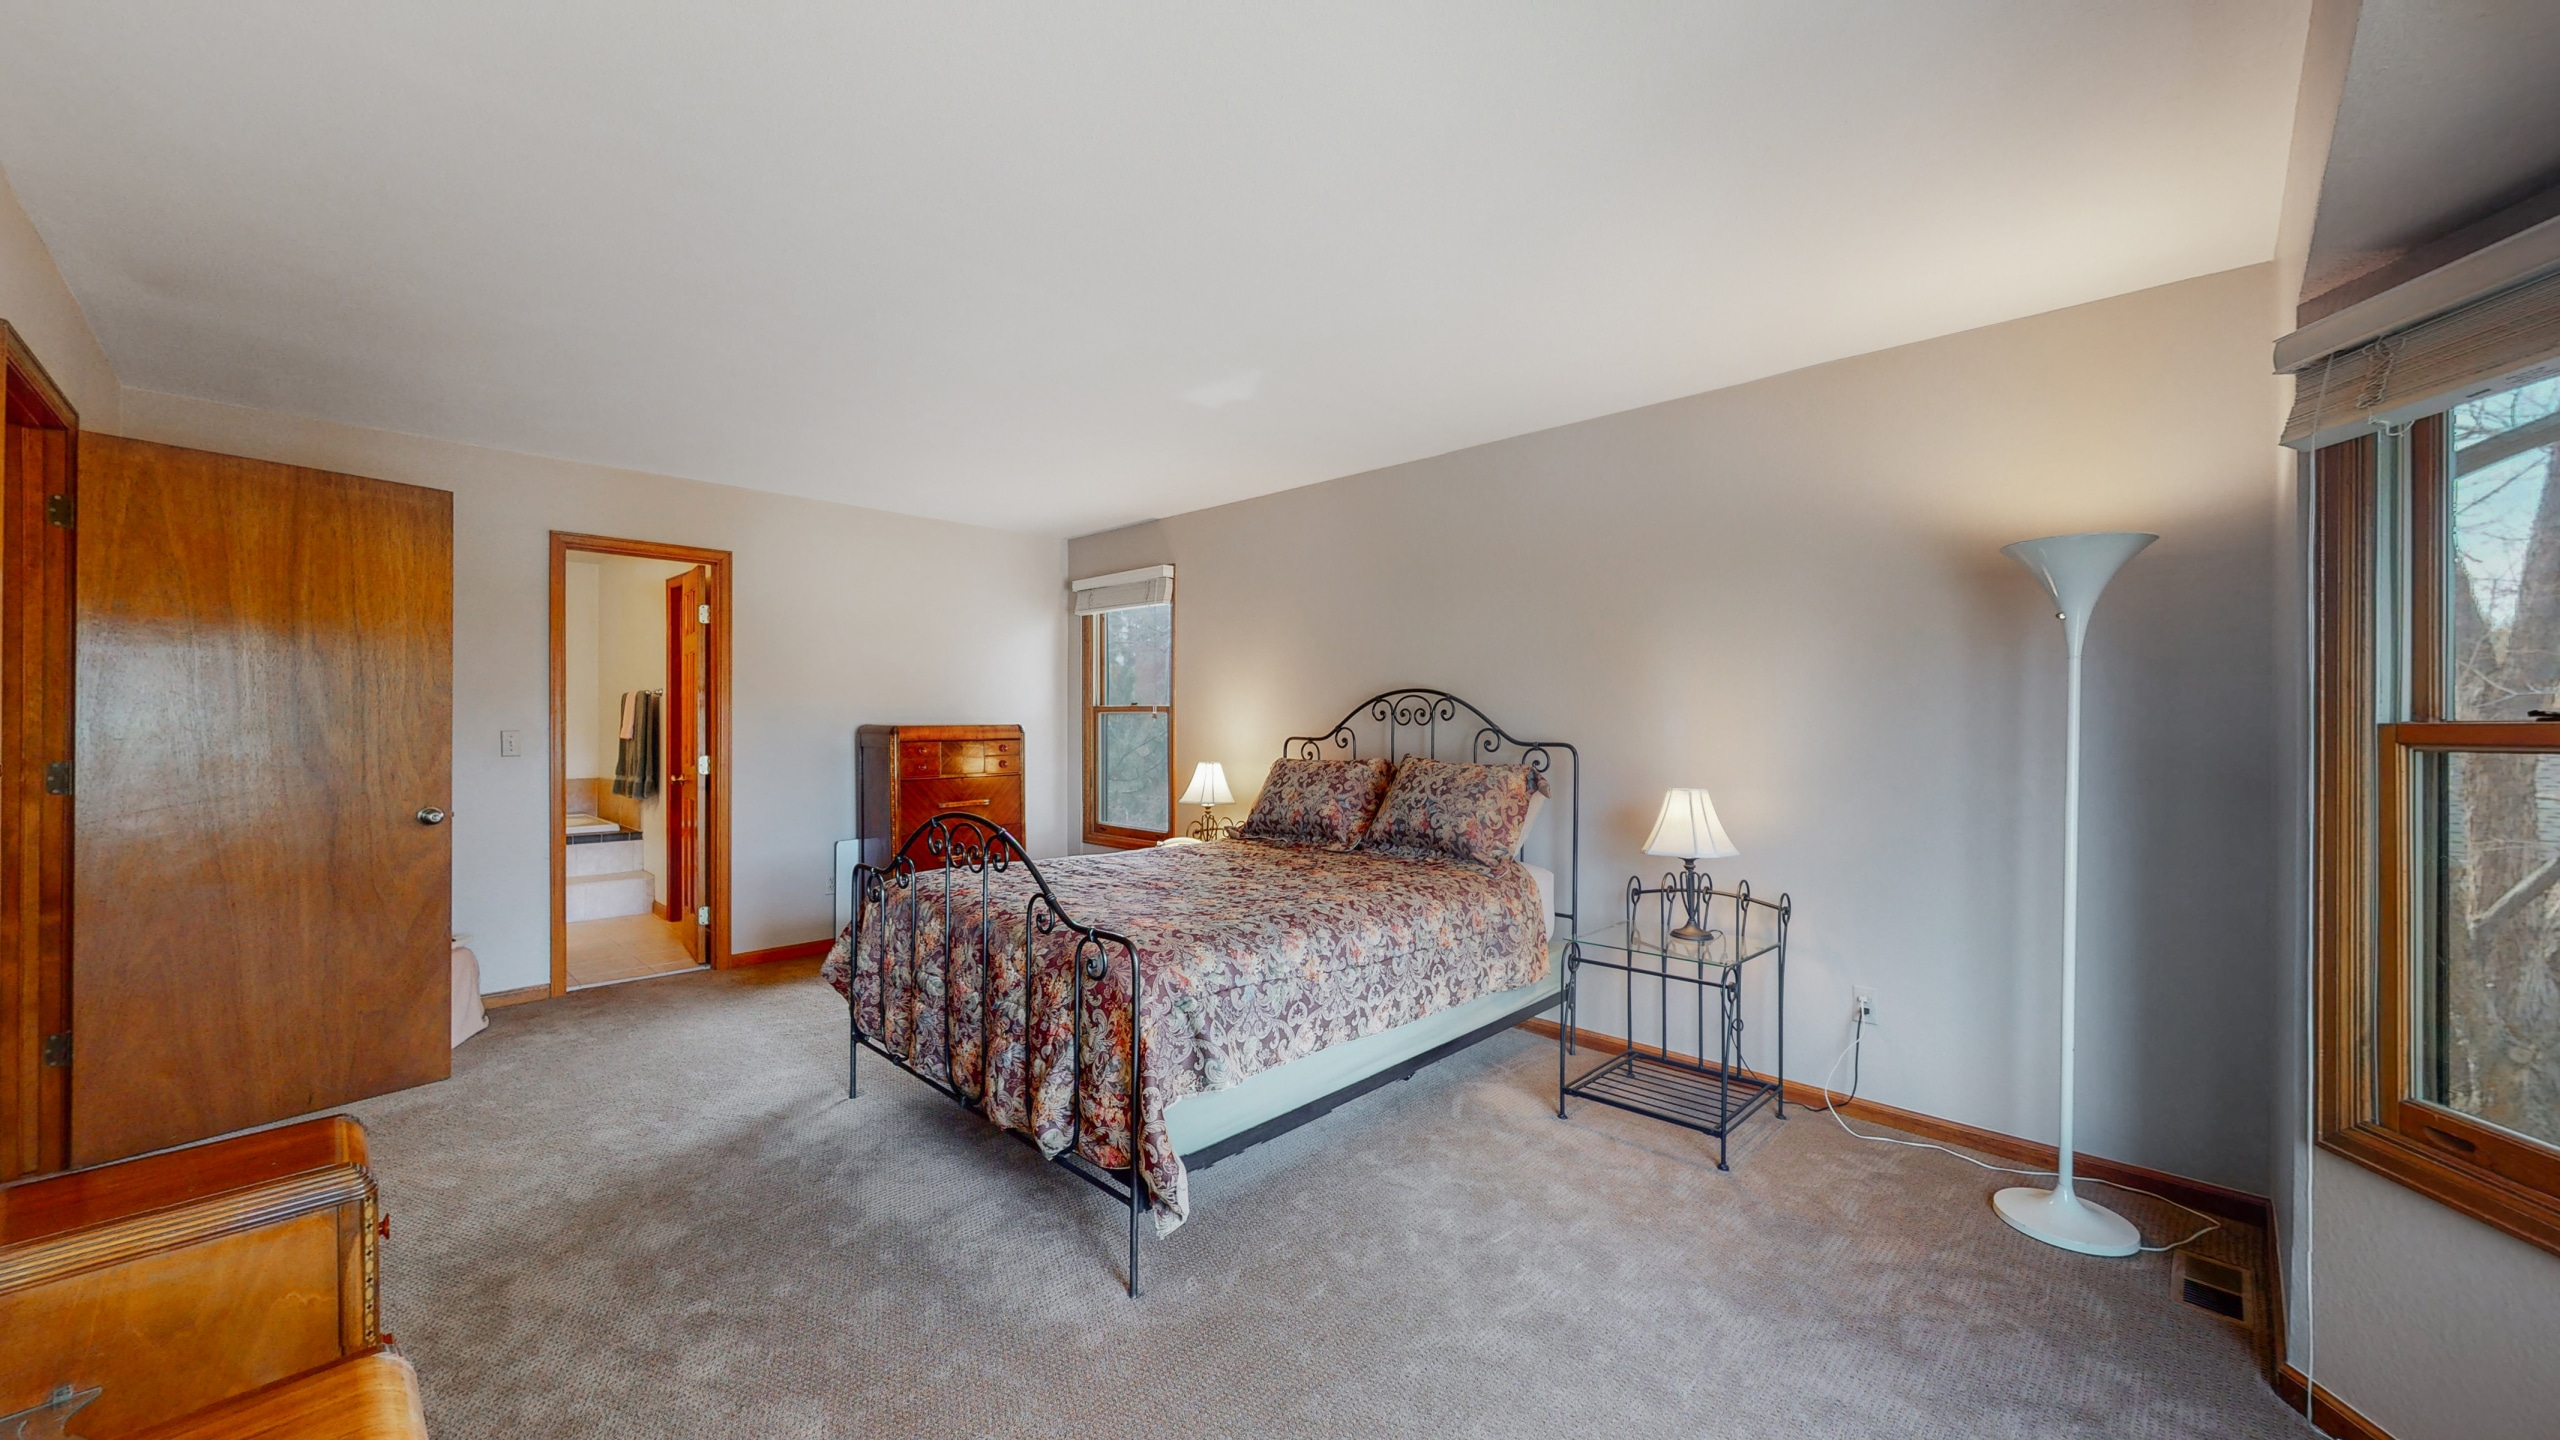 Large master bedroom can fit any size bed